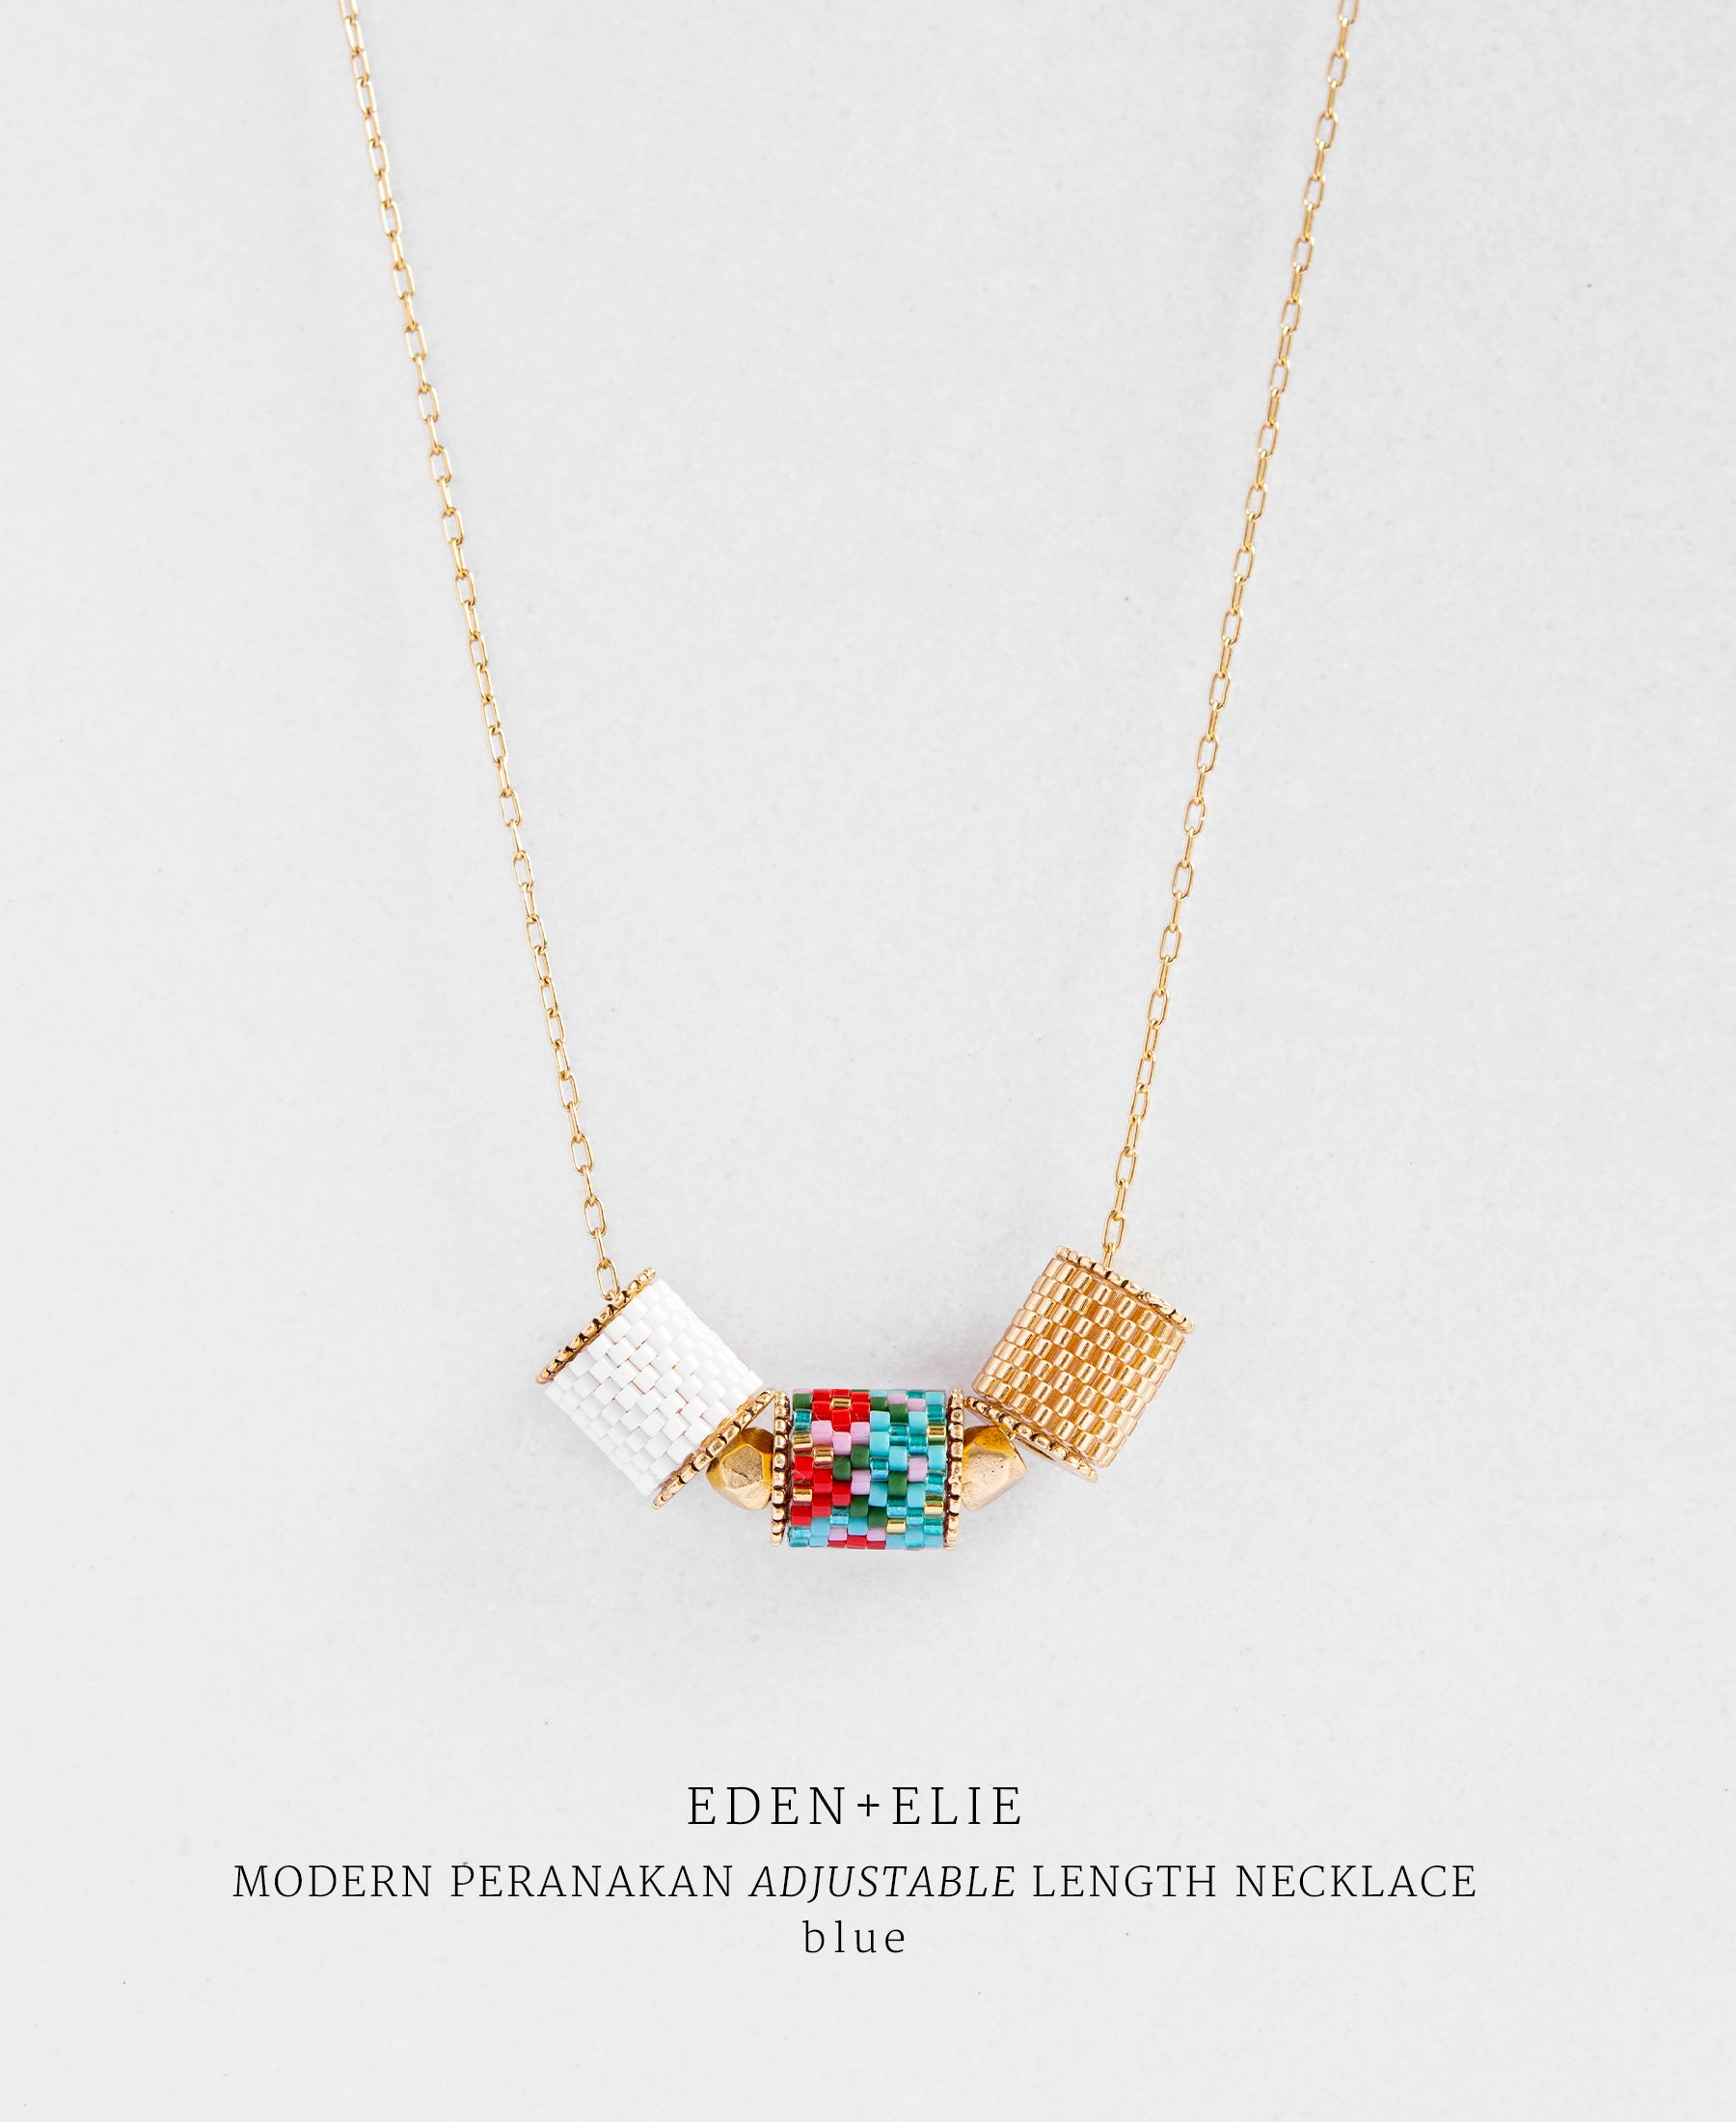 EDEN + ELIE Modern Peranakan adjustable length necklace - blue